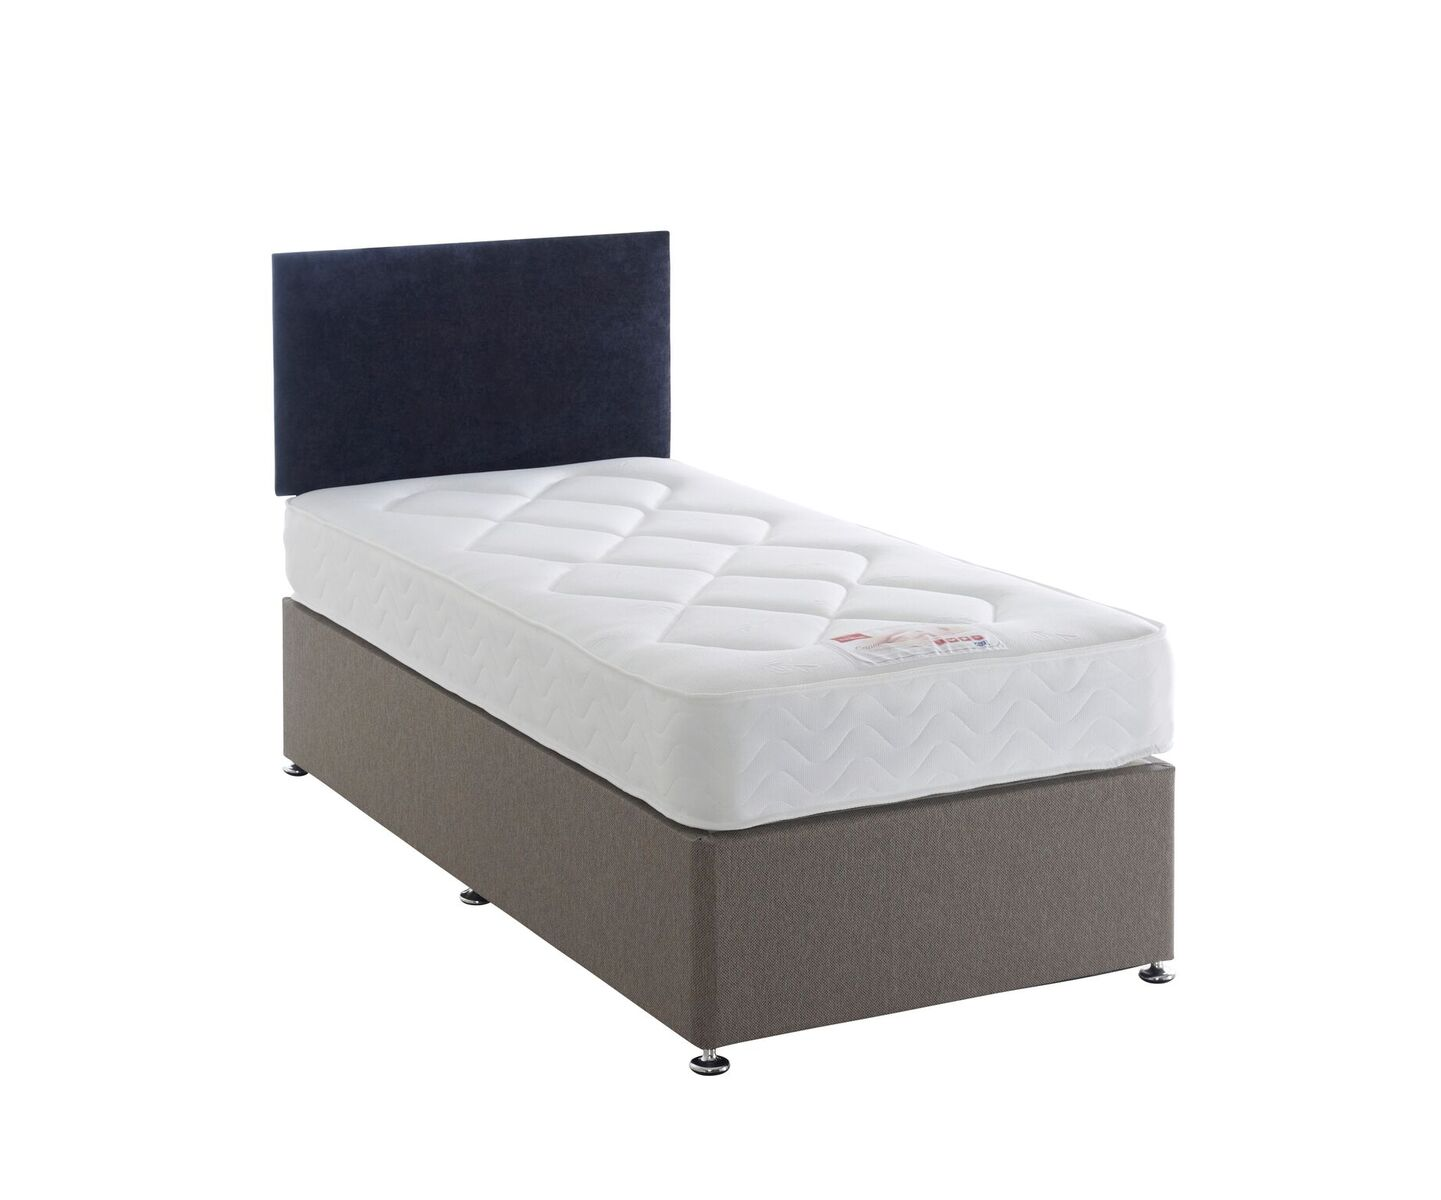 Durabed Capri Single Divan Set with 2 Free Drawers & Headboard